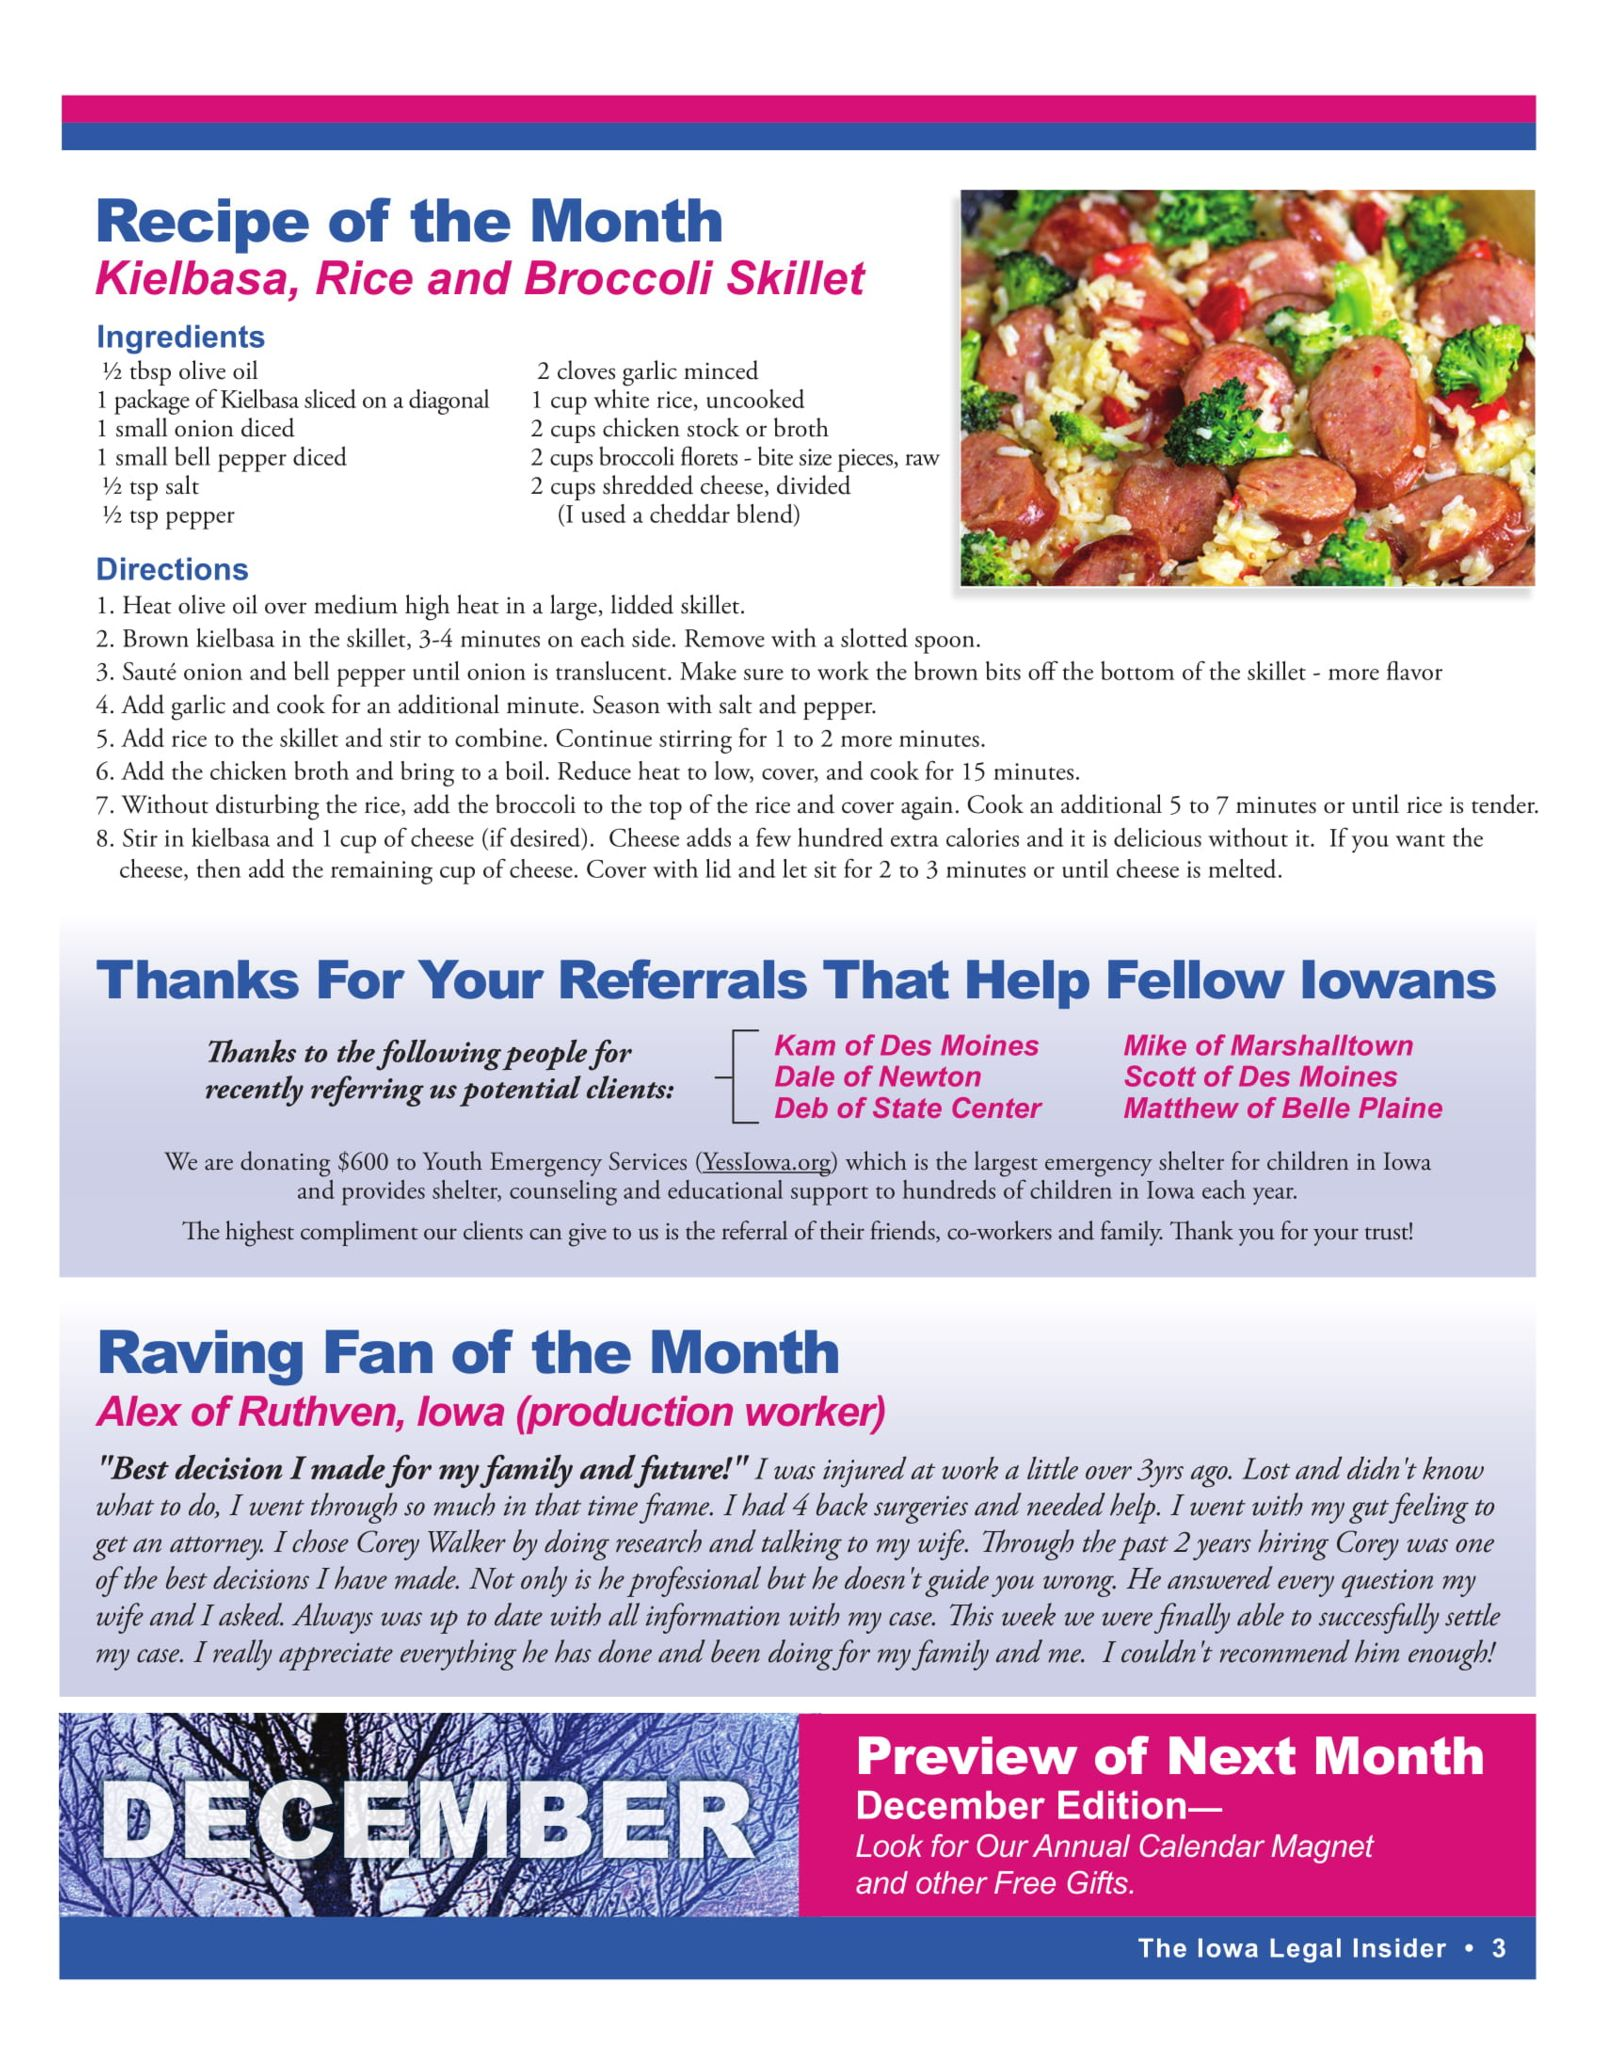 recipe of the month kielbasa rice and broccoli skillet November legal insider 2018 Iowa Personal Injury newsletter